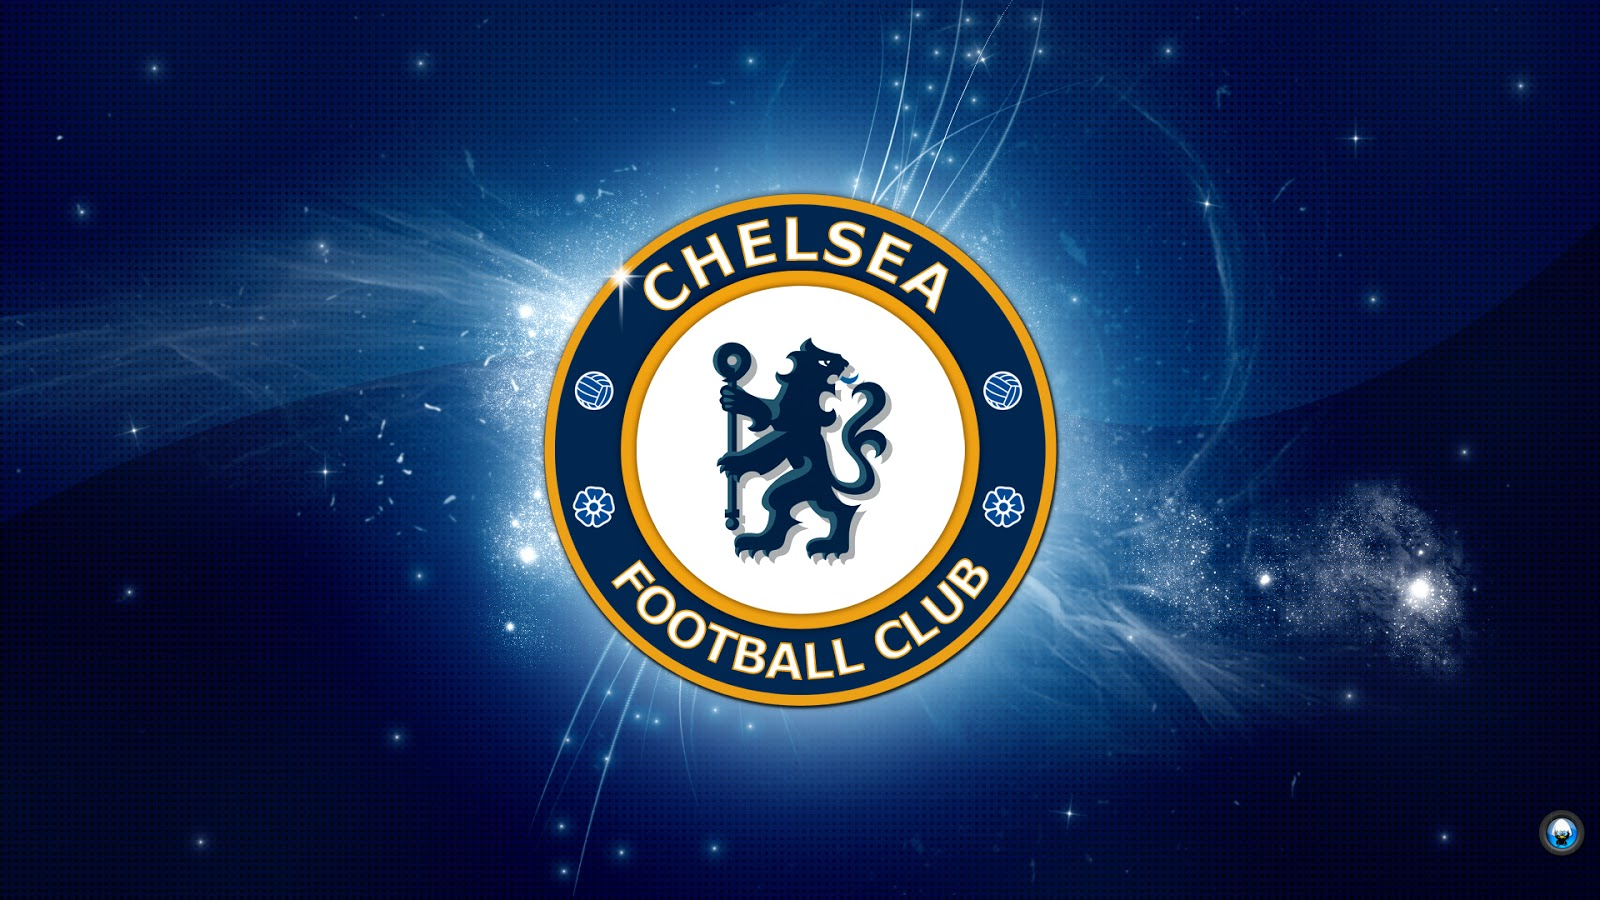 Chelsea FC 2013 Wallpapers HD